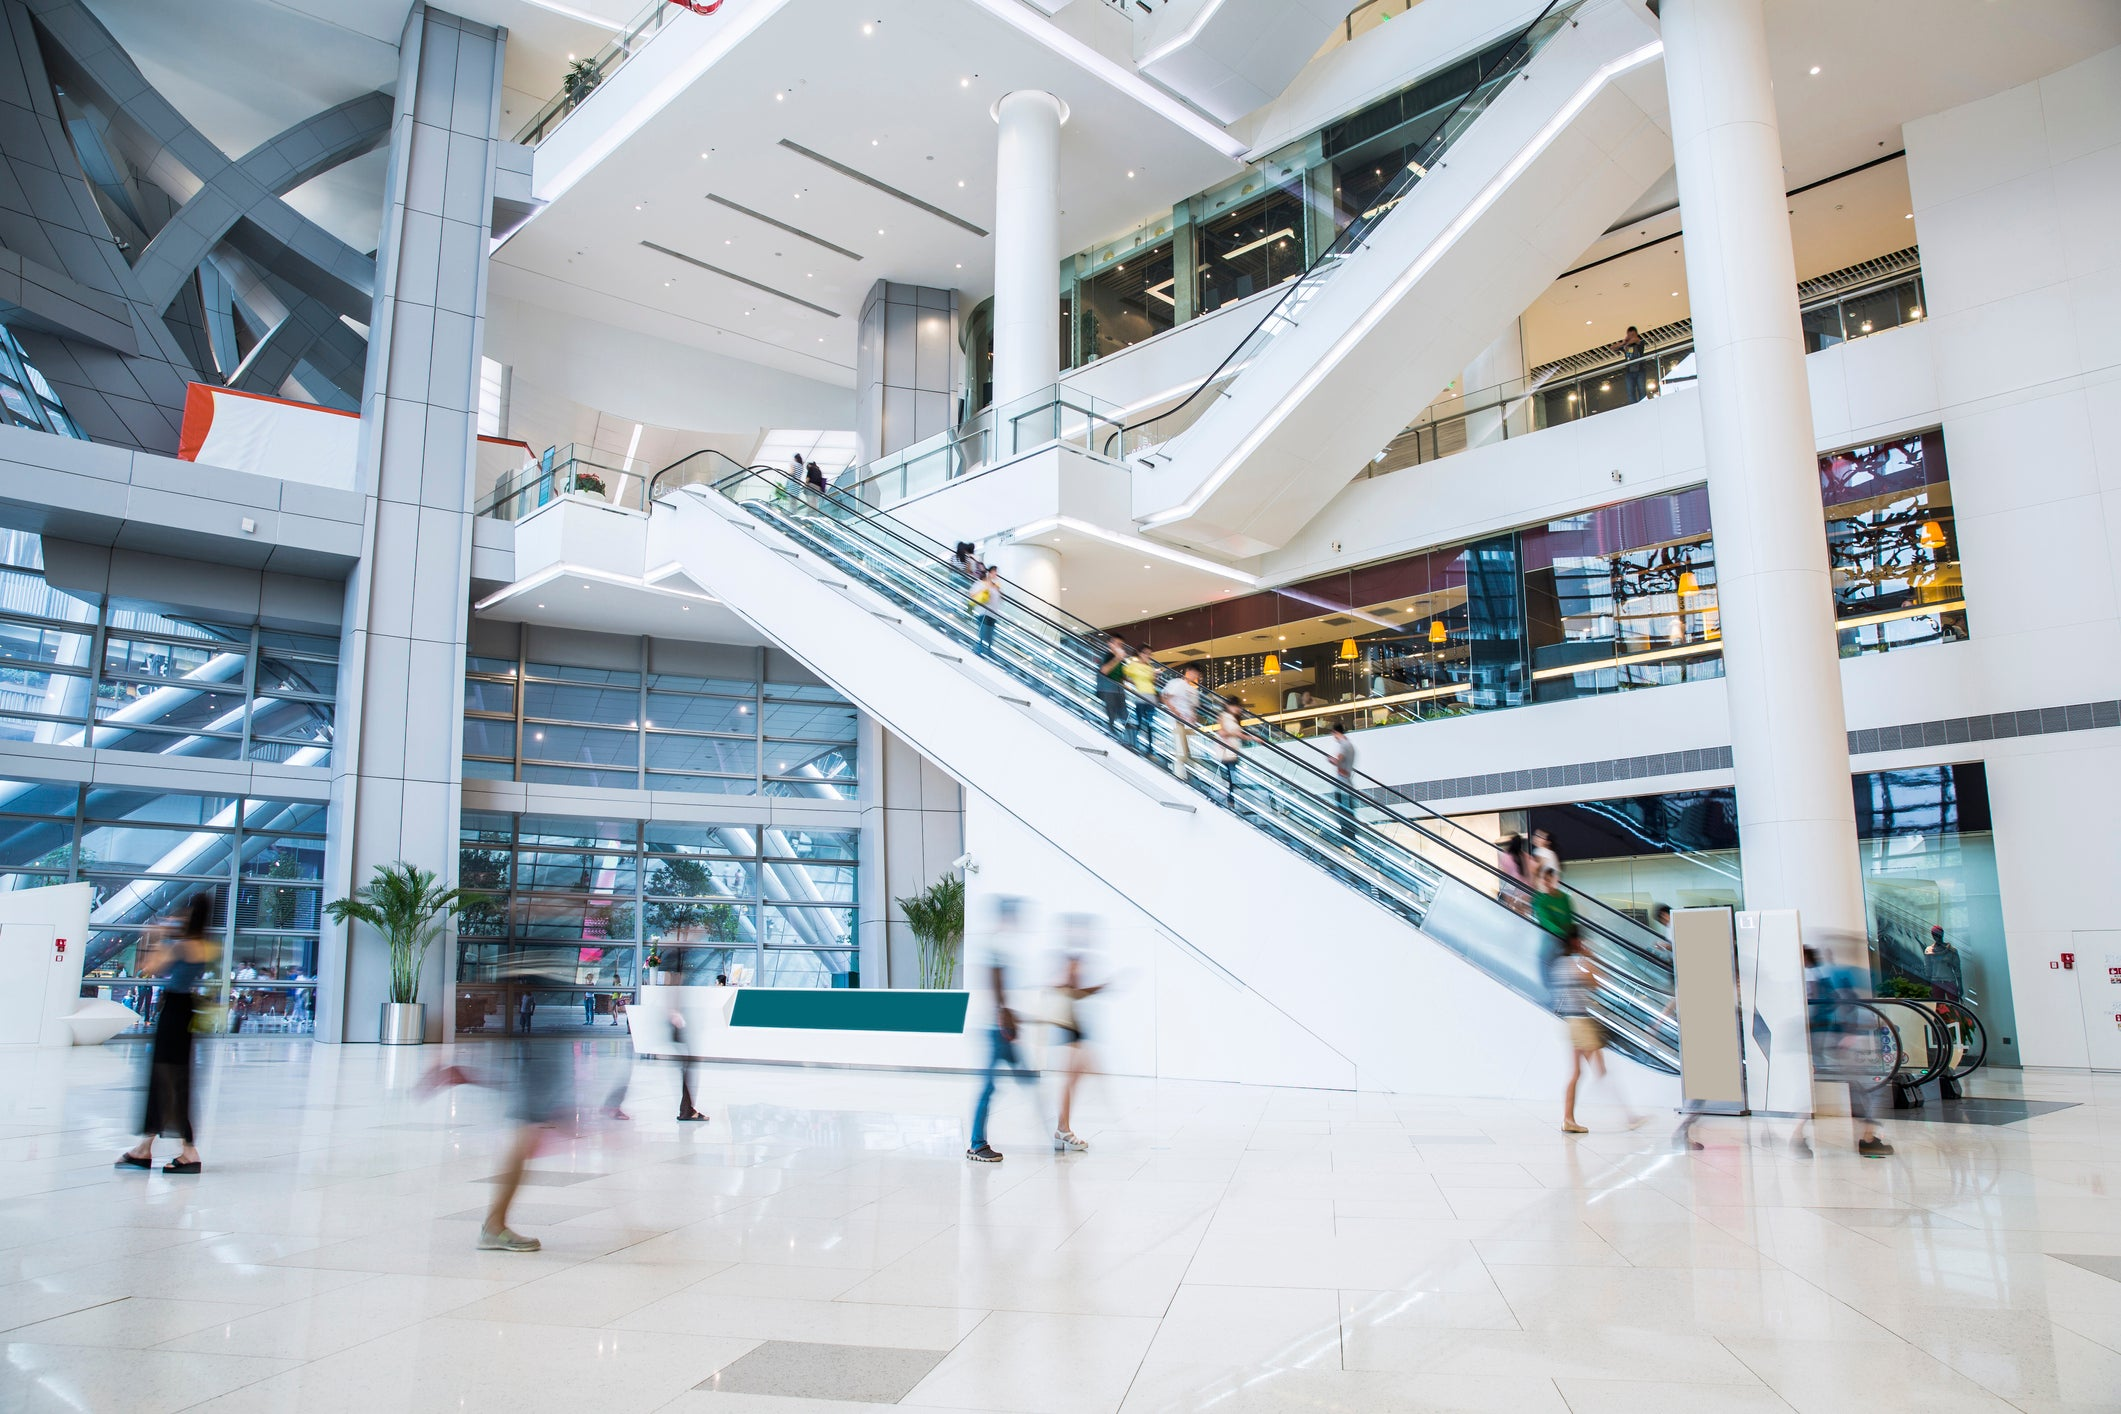 The interior of a multilevel shopping mall.